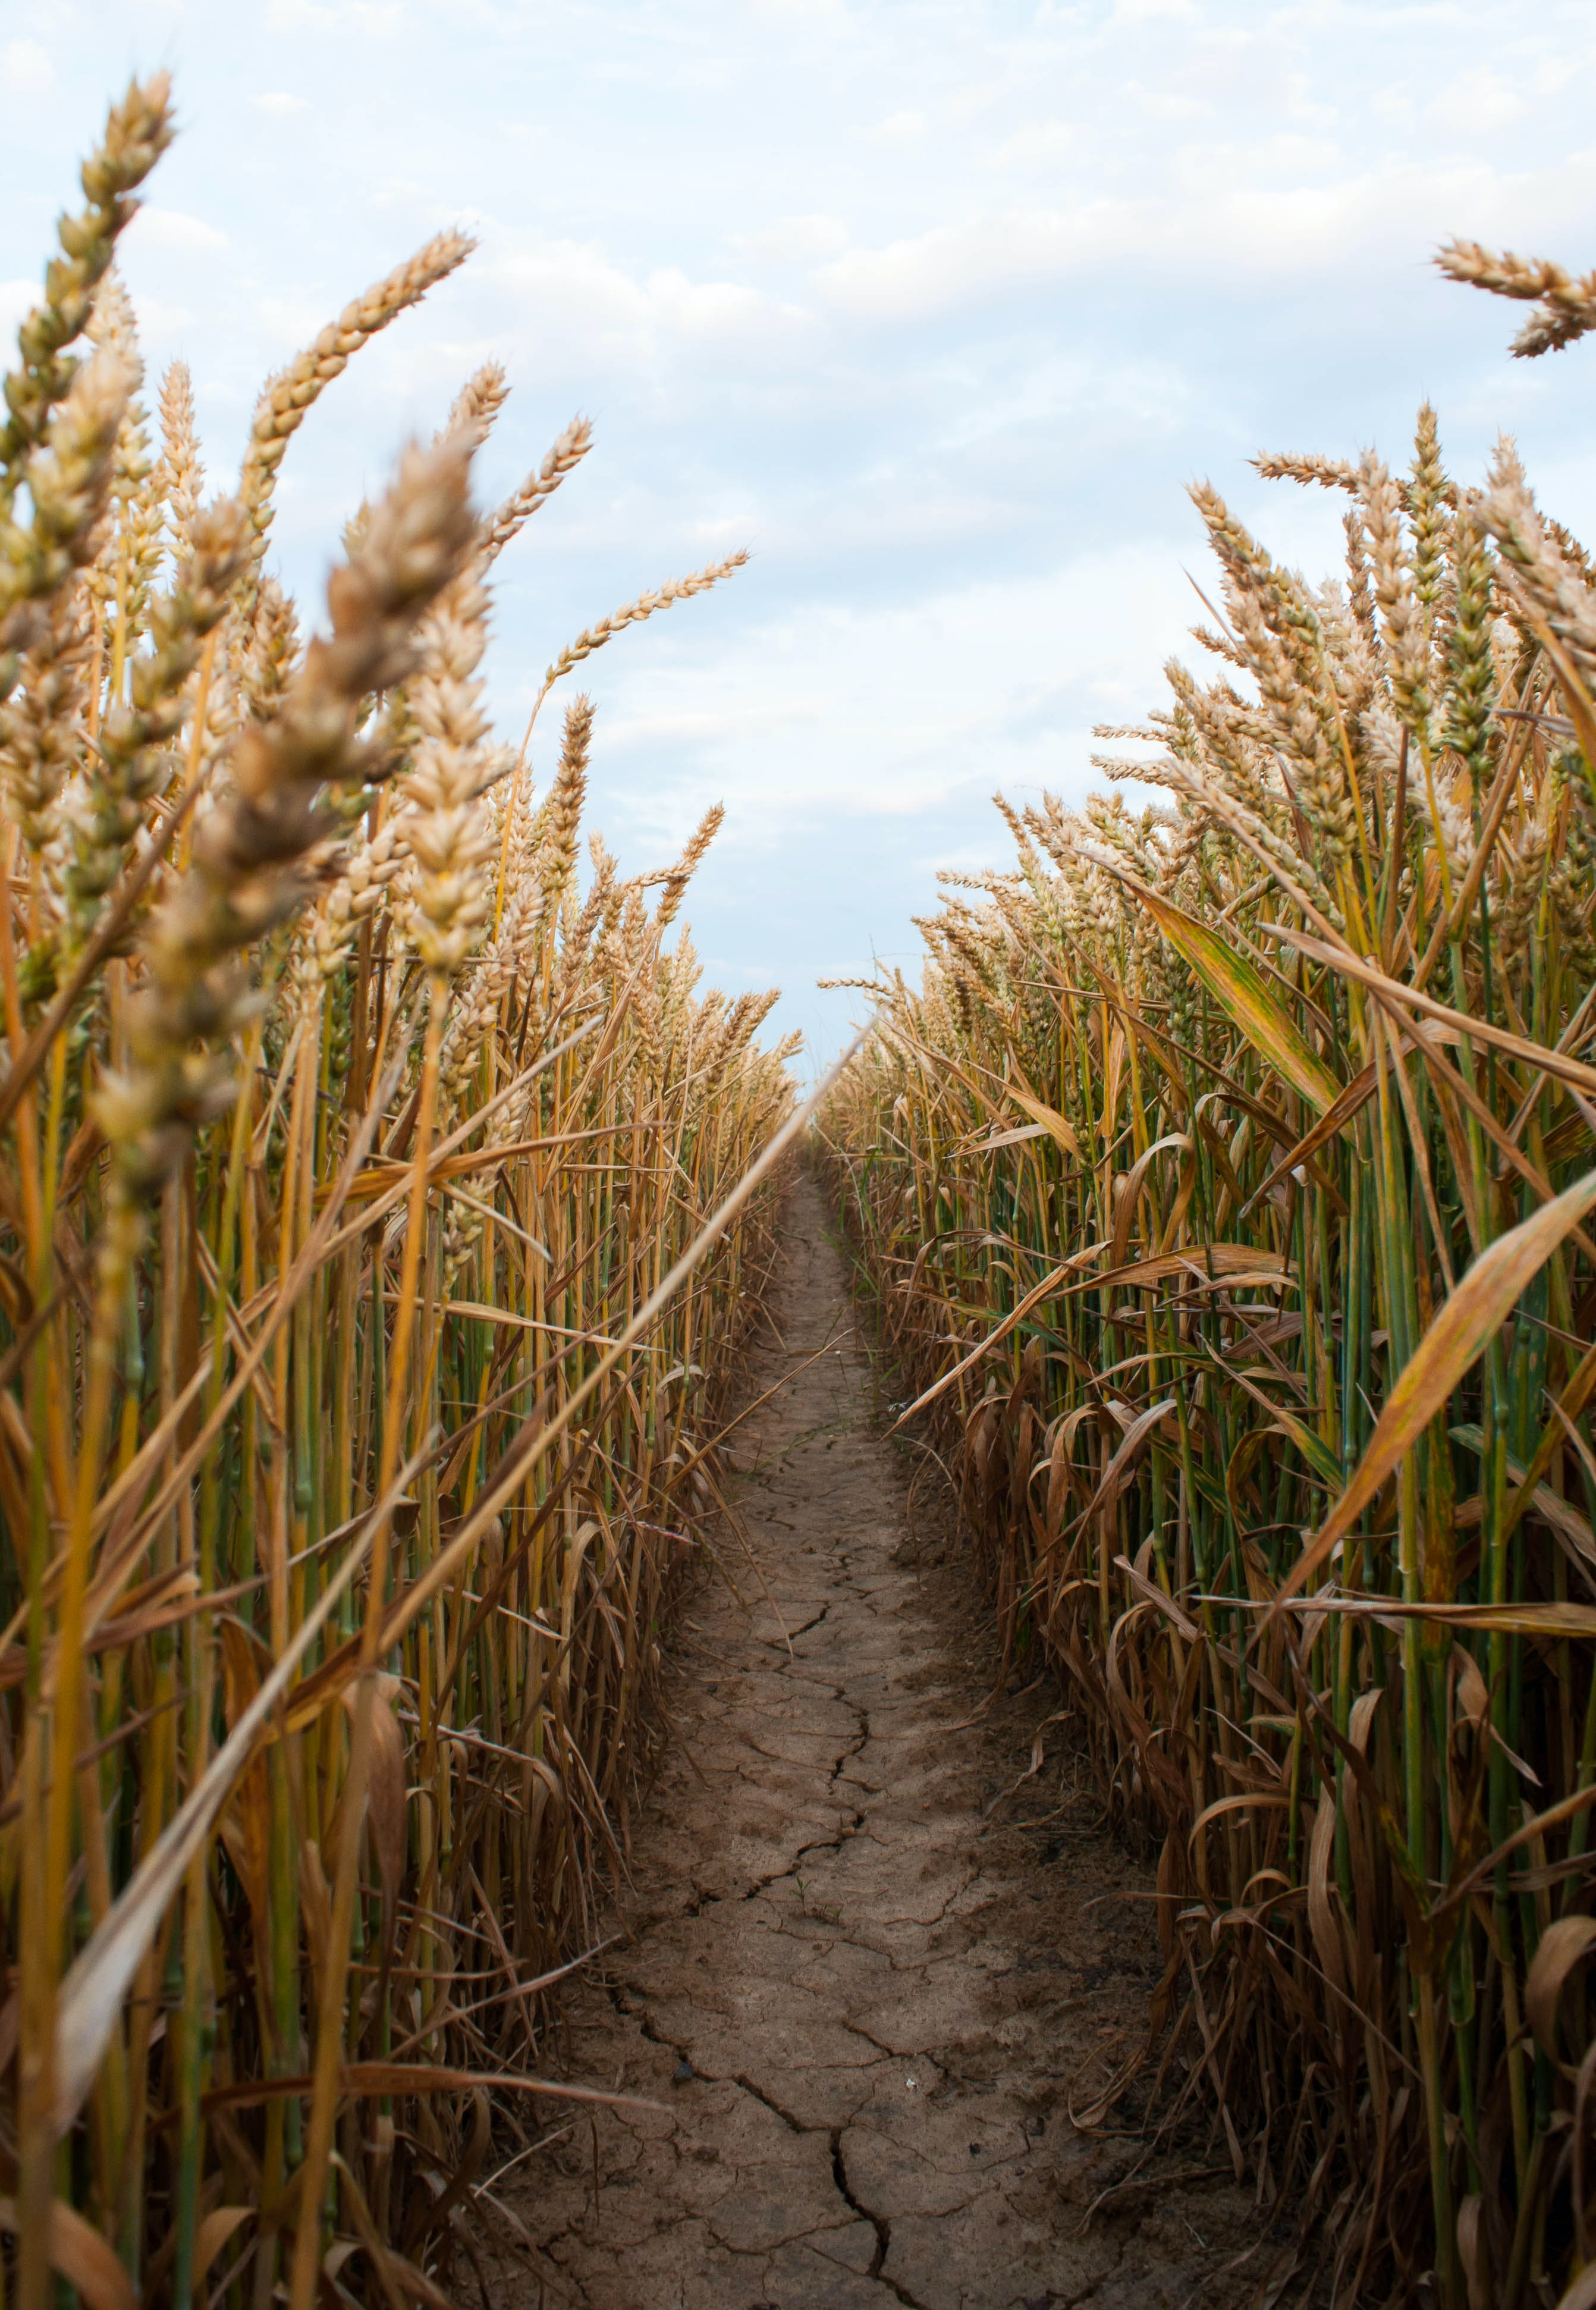 pathway between brown wheat plants at daytime